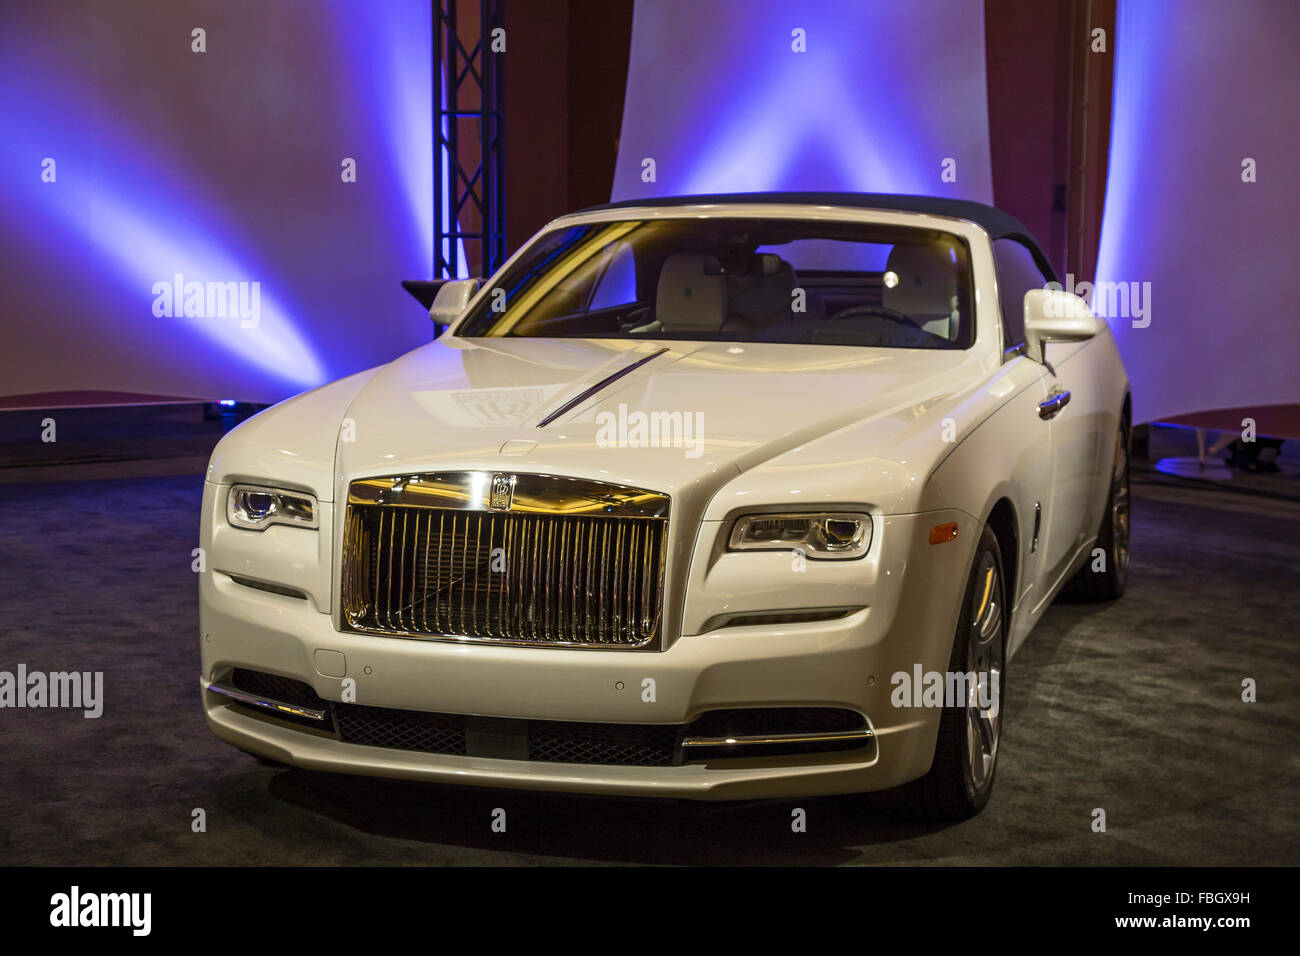 Detroit, Michigan - A Rolls Royce Dawn in a collection of ultra-luxury cars on display during the Detroit auto show. - Stock Image